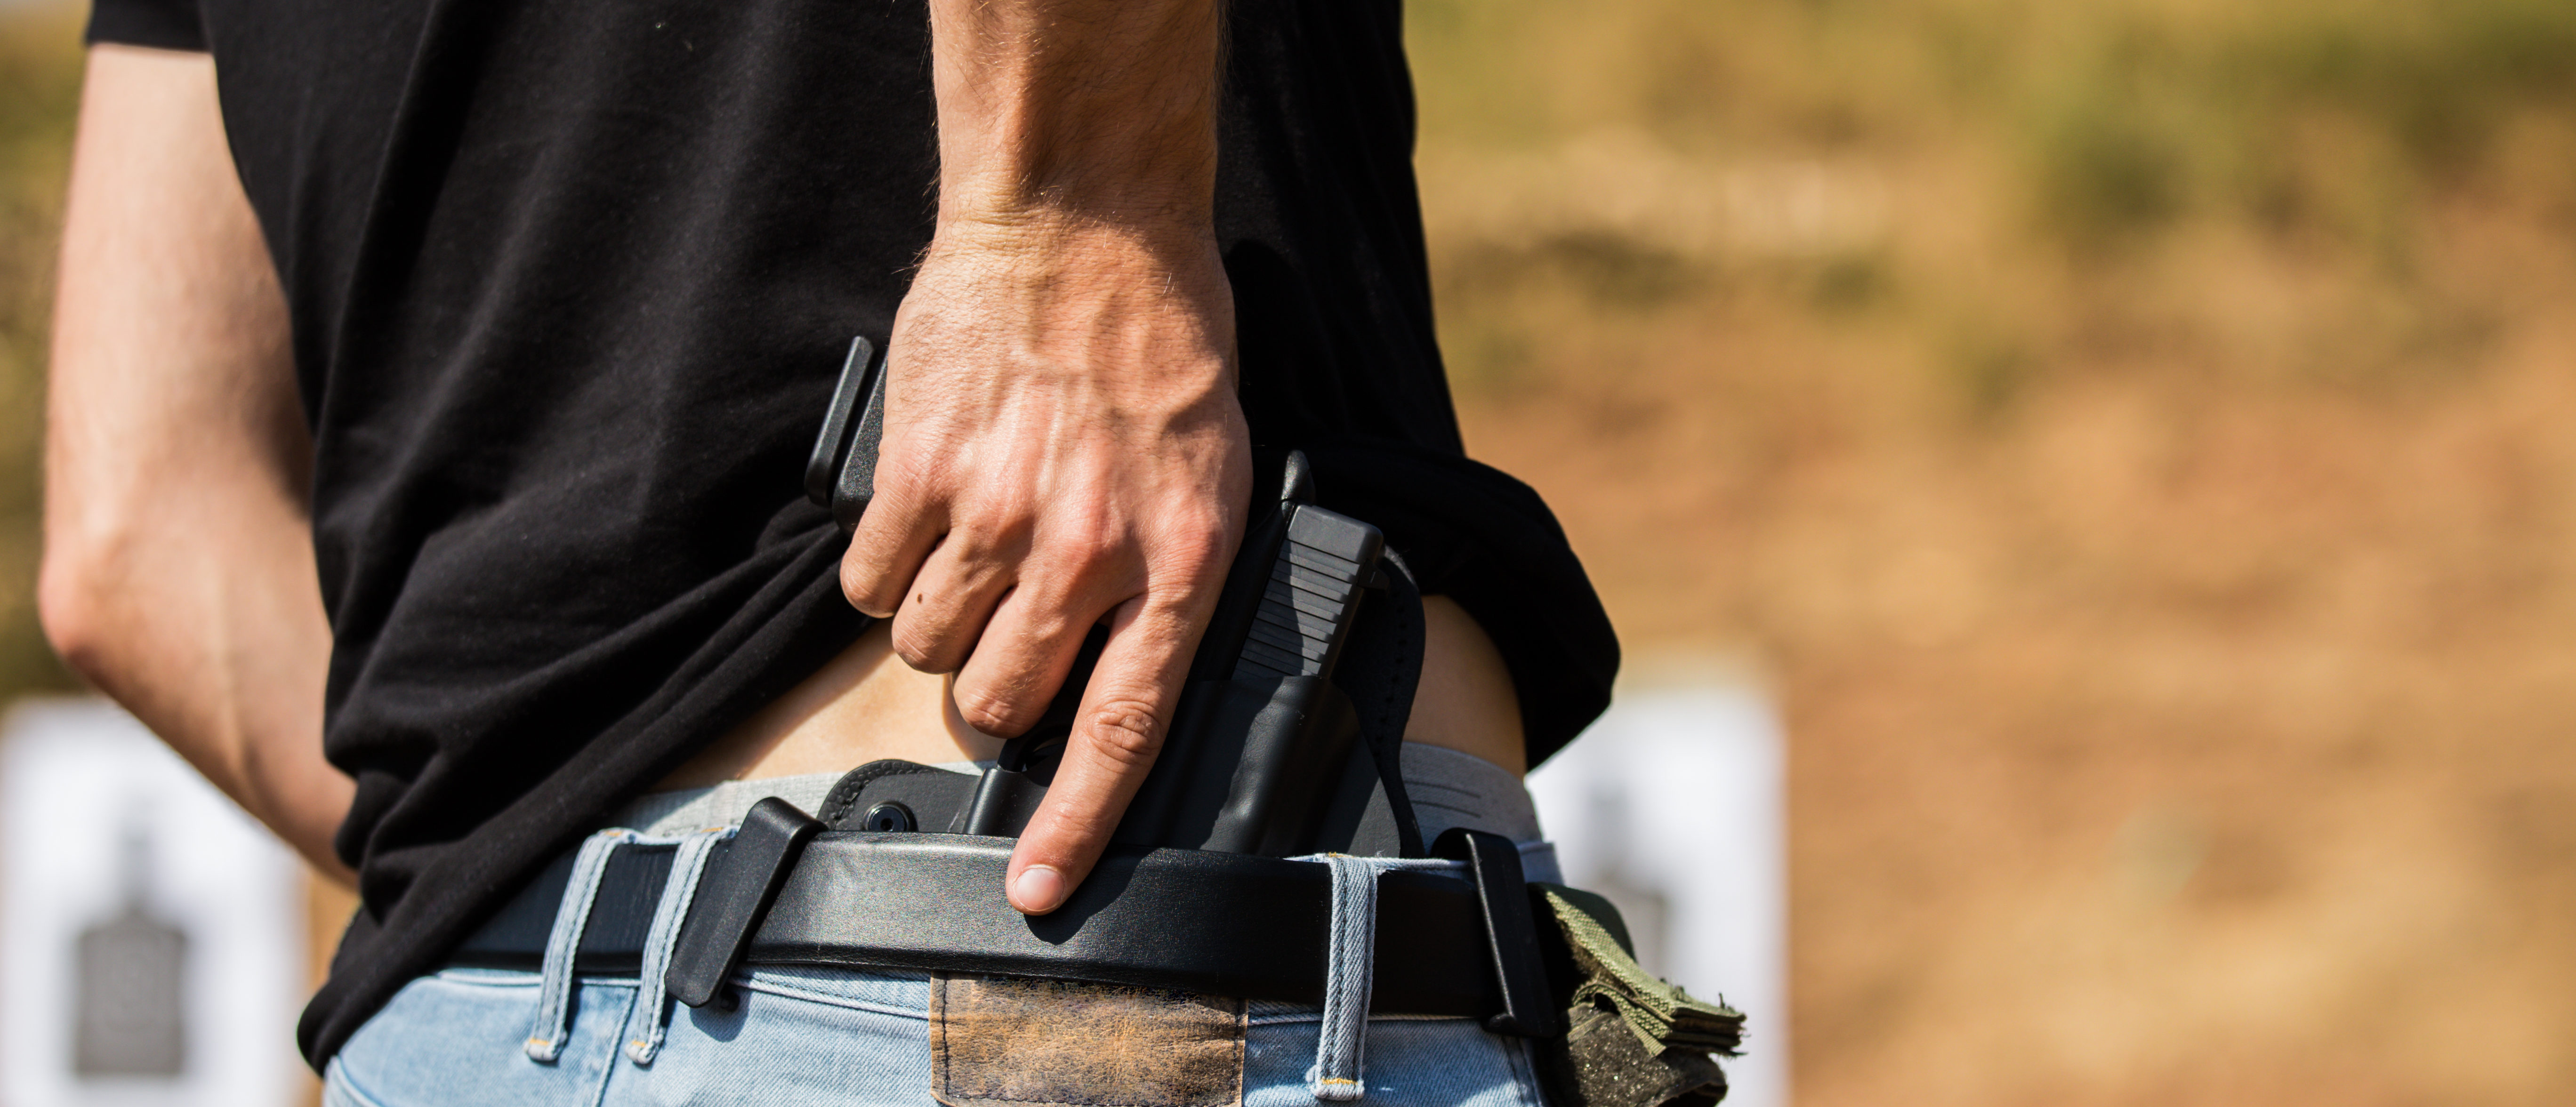 A handgun is drawn from a concealed carry holster. Photo by Shutterstock.